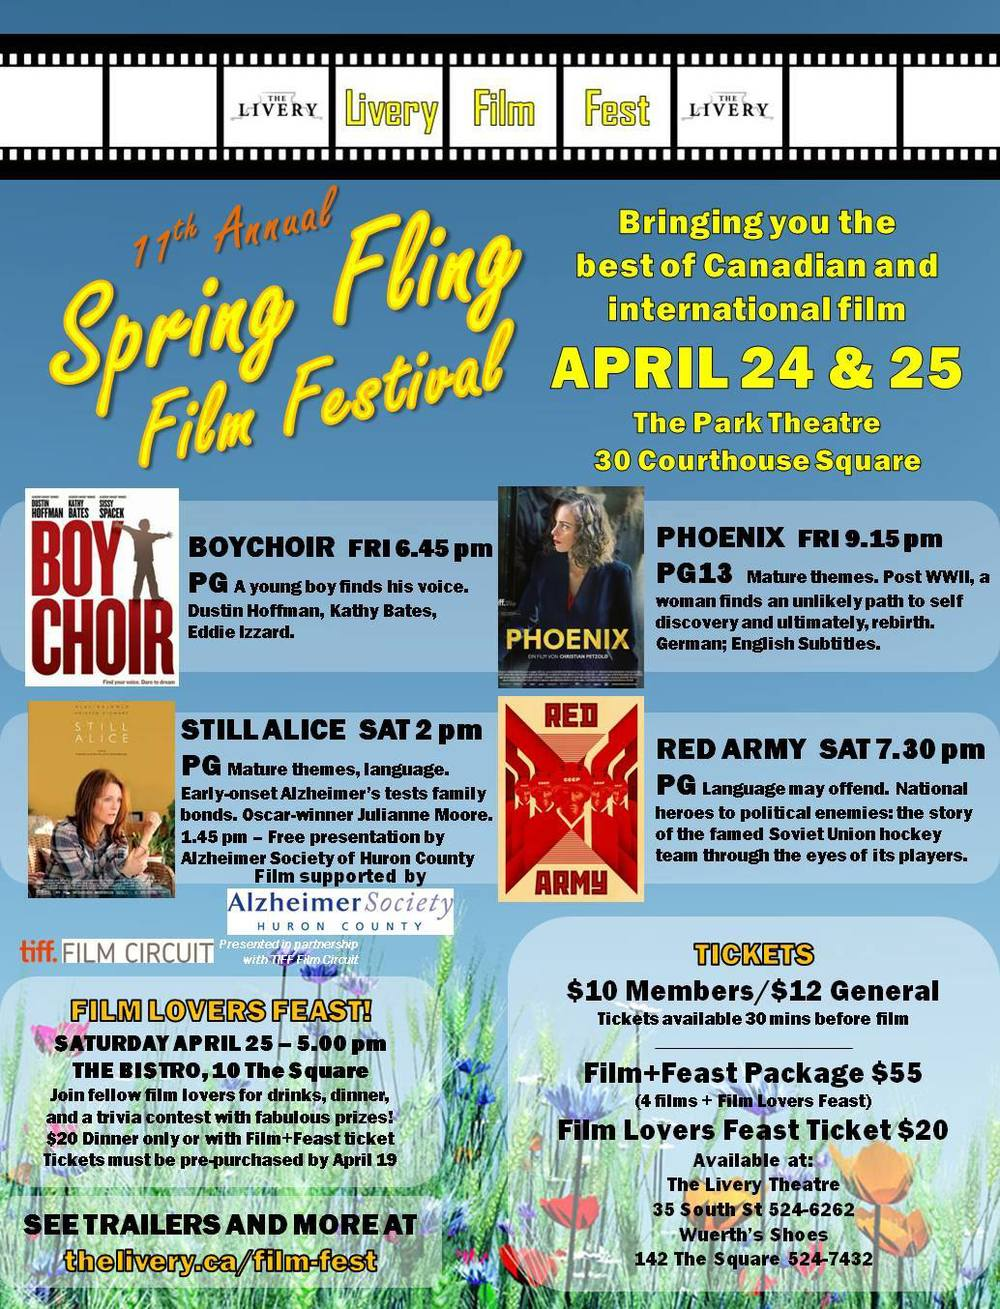 11th Annual Spring Fling Film Festival